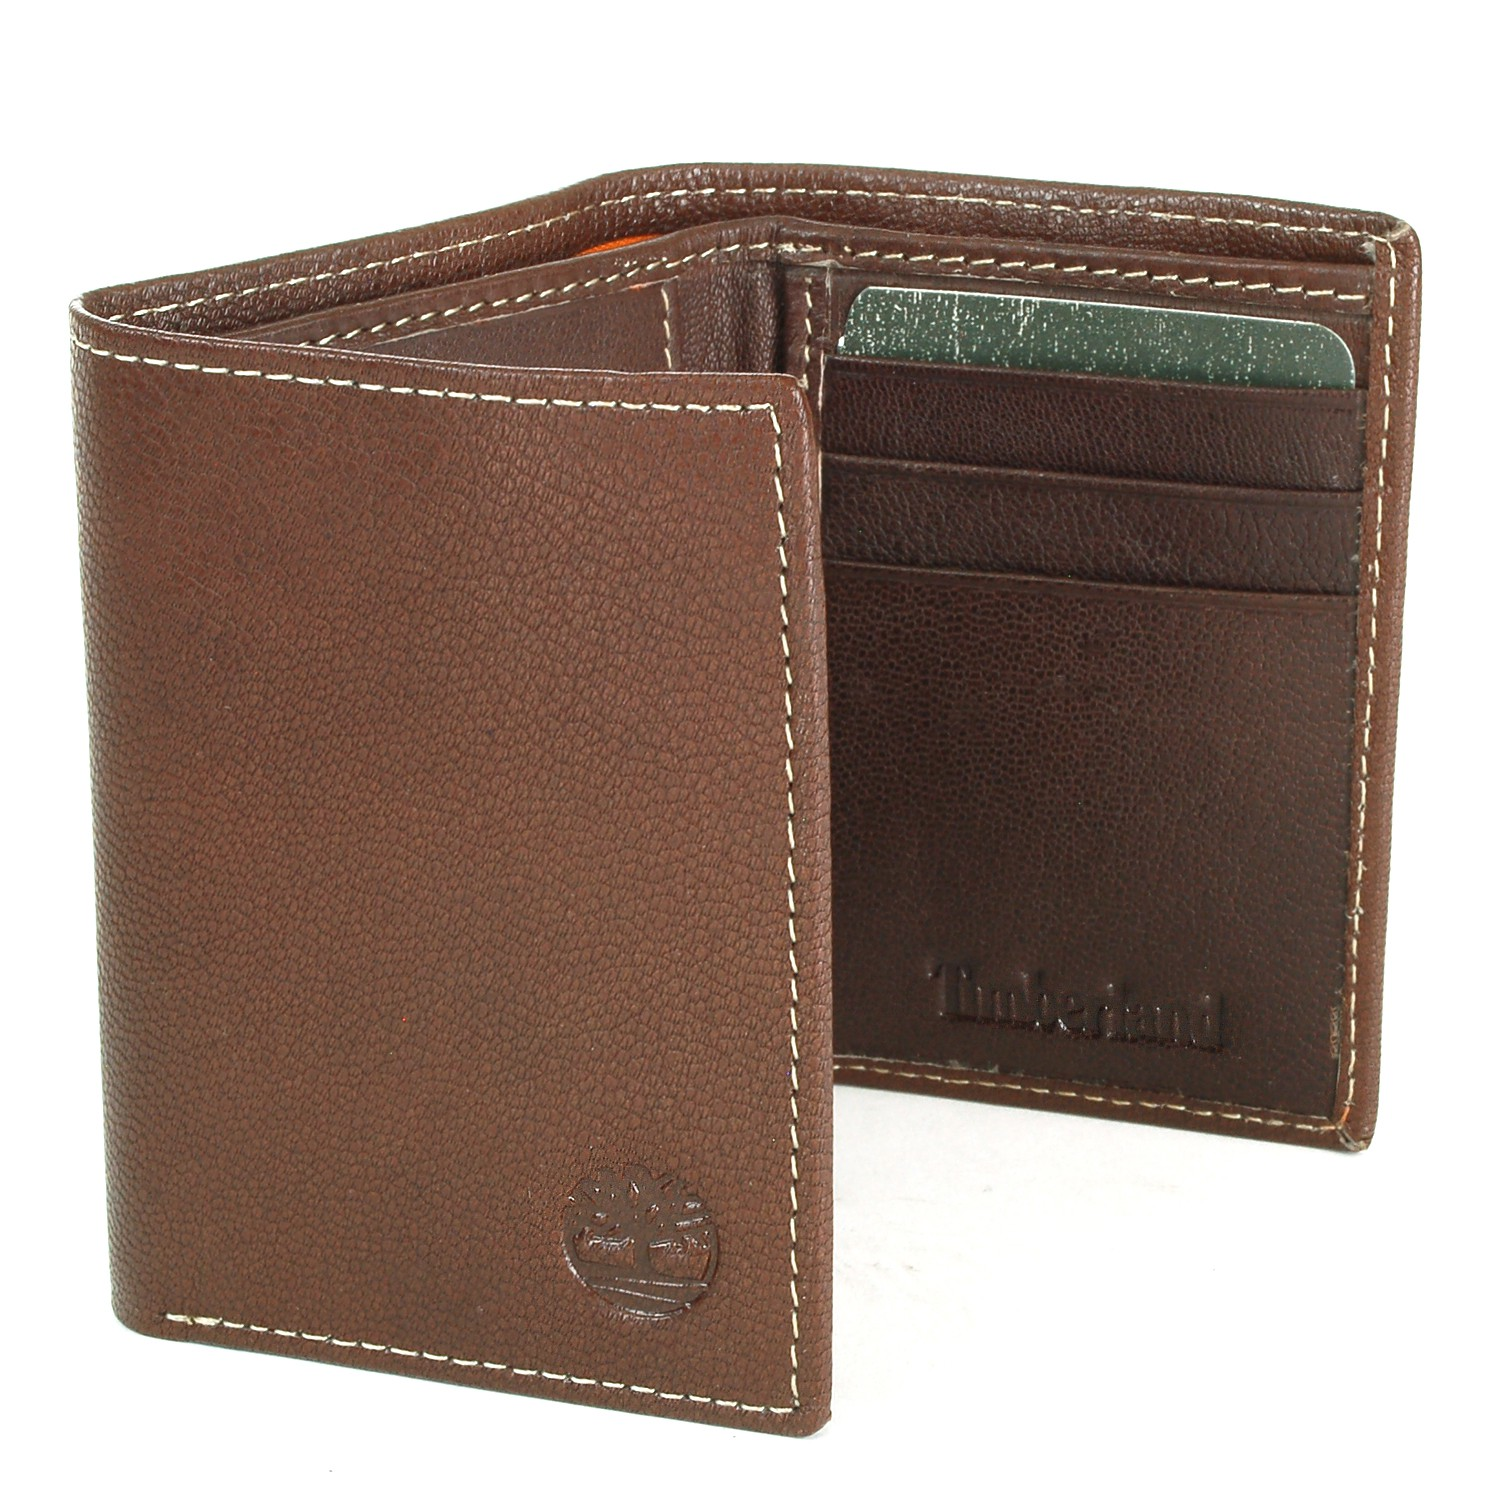 Timberland Men's Slim Trifold Wallet Soft Genuine Leather ID Card Slots Gift Box